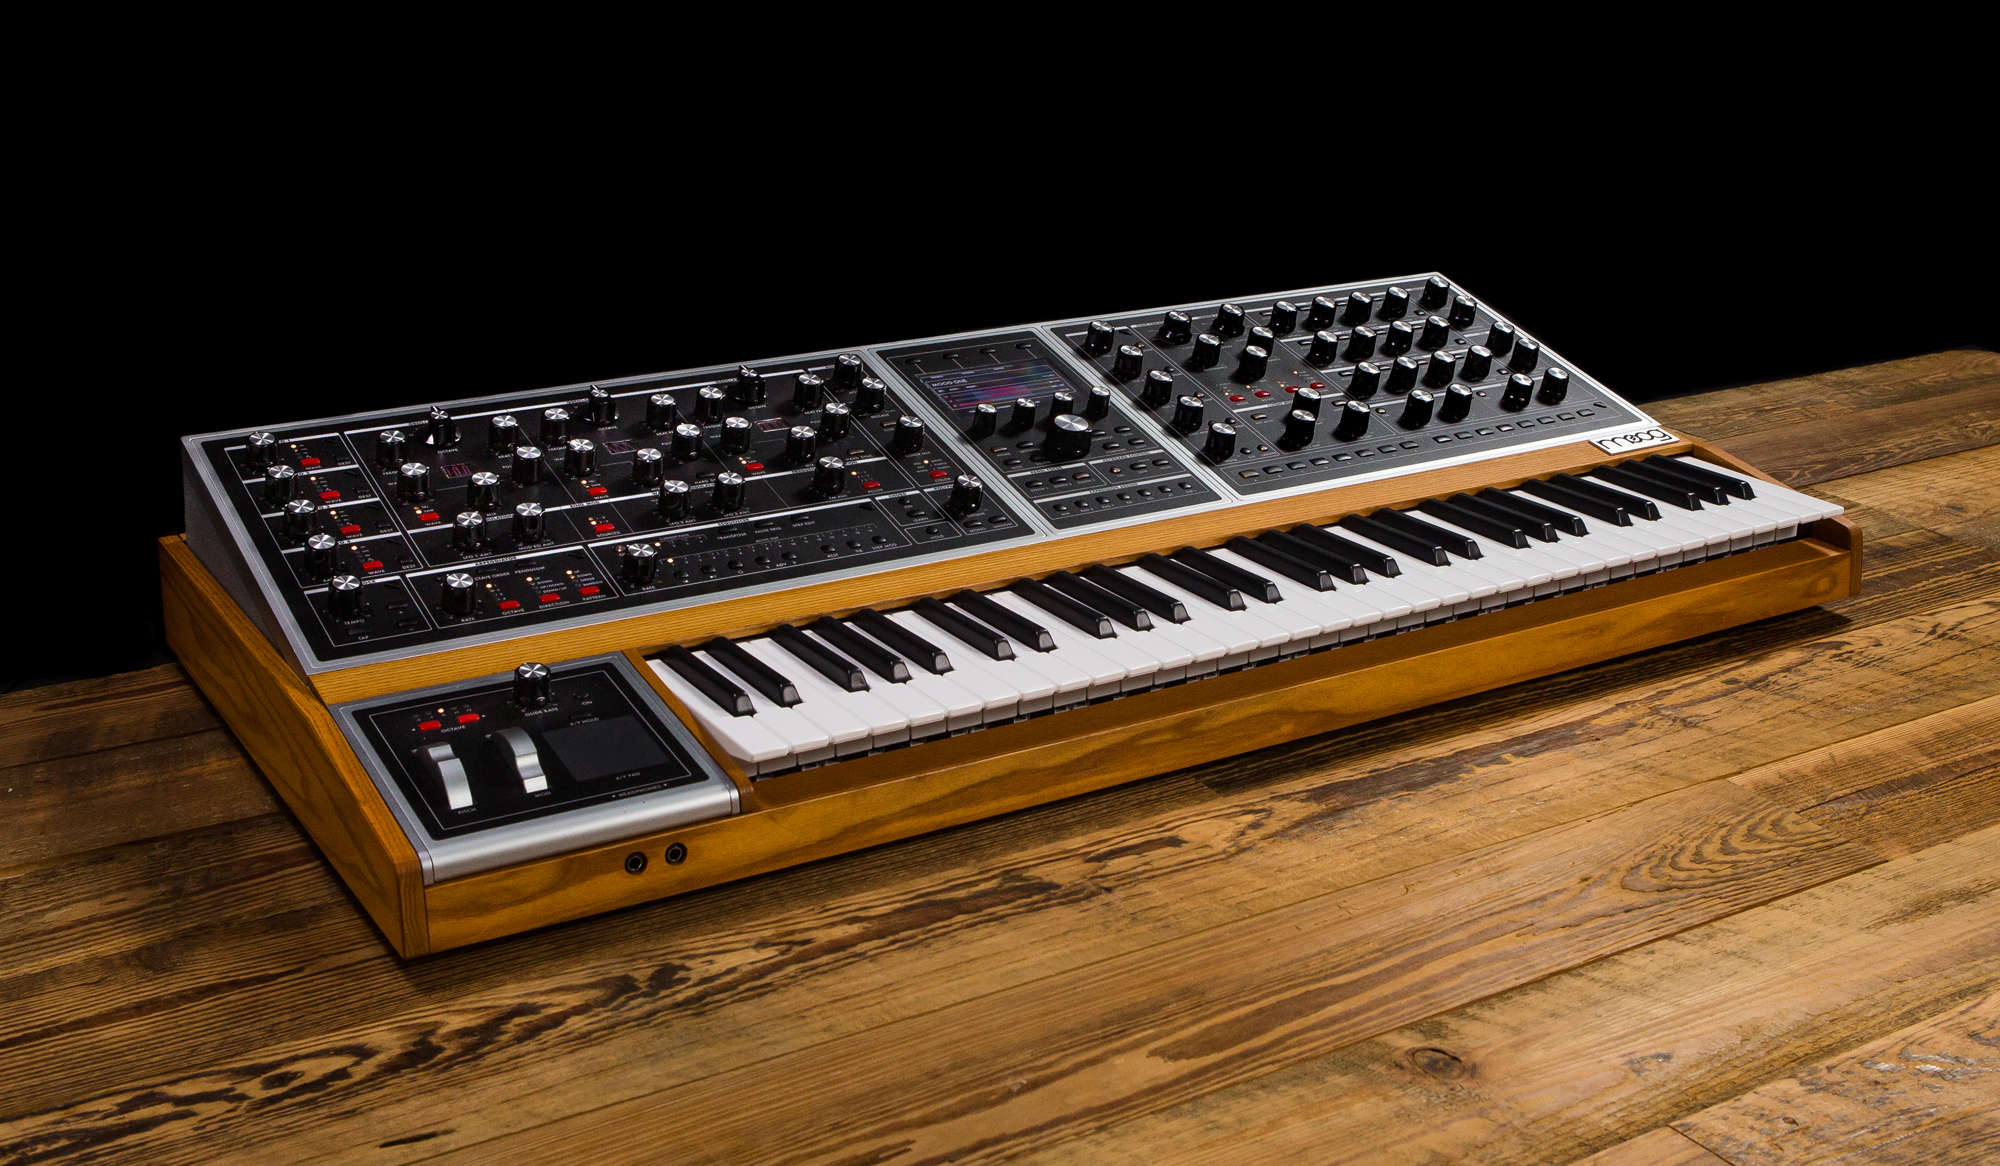 https://api.moogmusic.com/sites/default/files/styles/super_key_2x/public/images/2018-10/Moog_One_News_Page.jpg